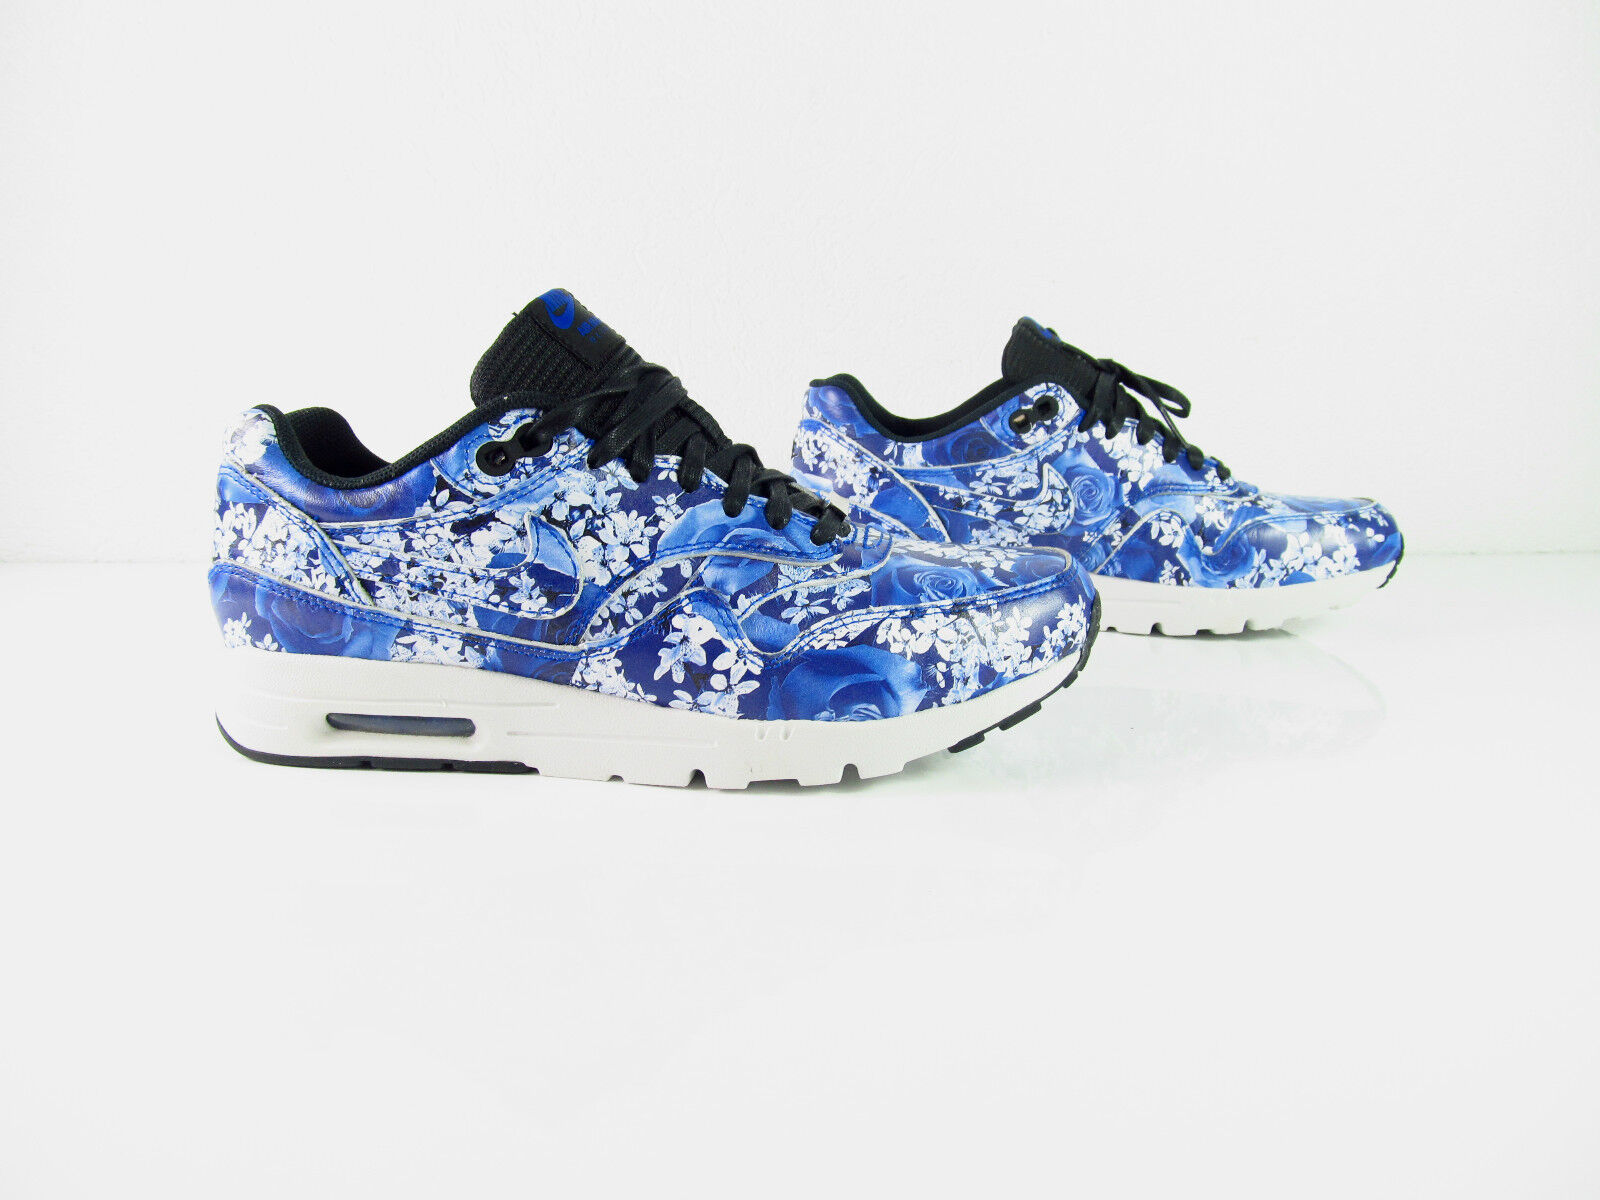 Nike Air Max 1 Ultra Lotc QS TOKYO City Pack Floral NSW OG New 747105-401